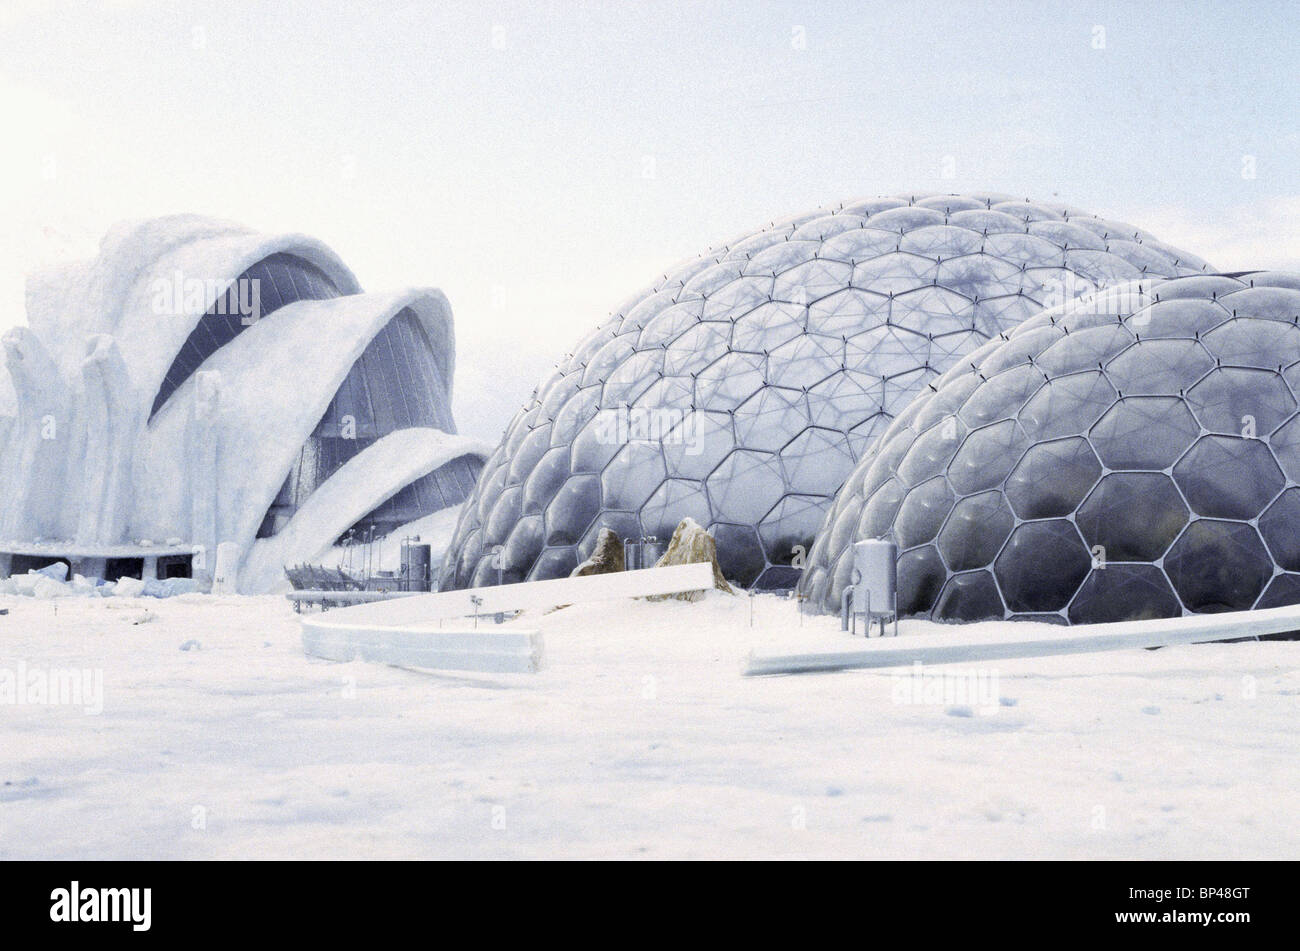 OUTSIDE THE ICE PALACE JAMES BOND 20: DIE ANOTHER DAY (2002) - Stock Image